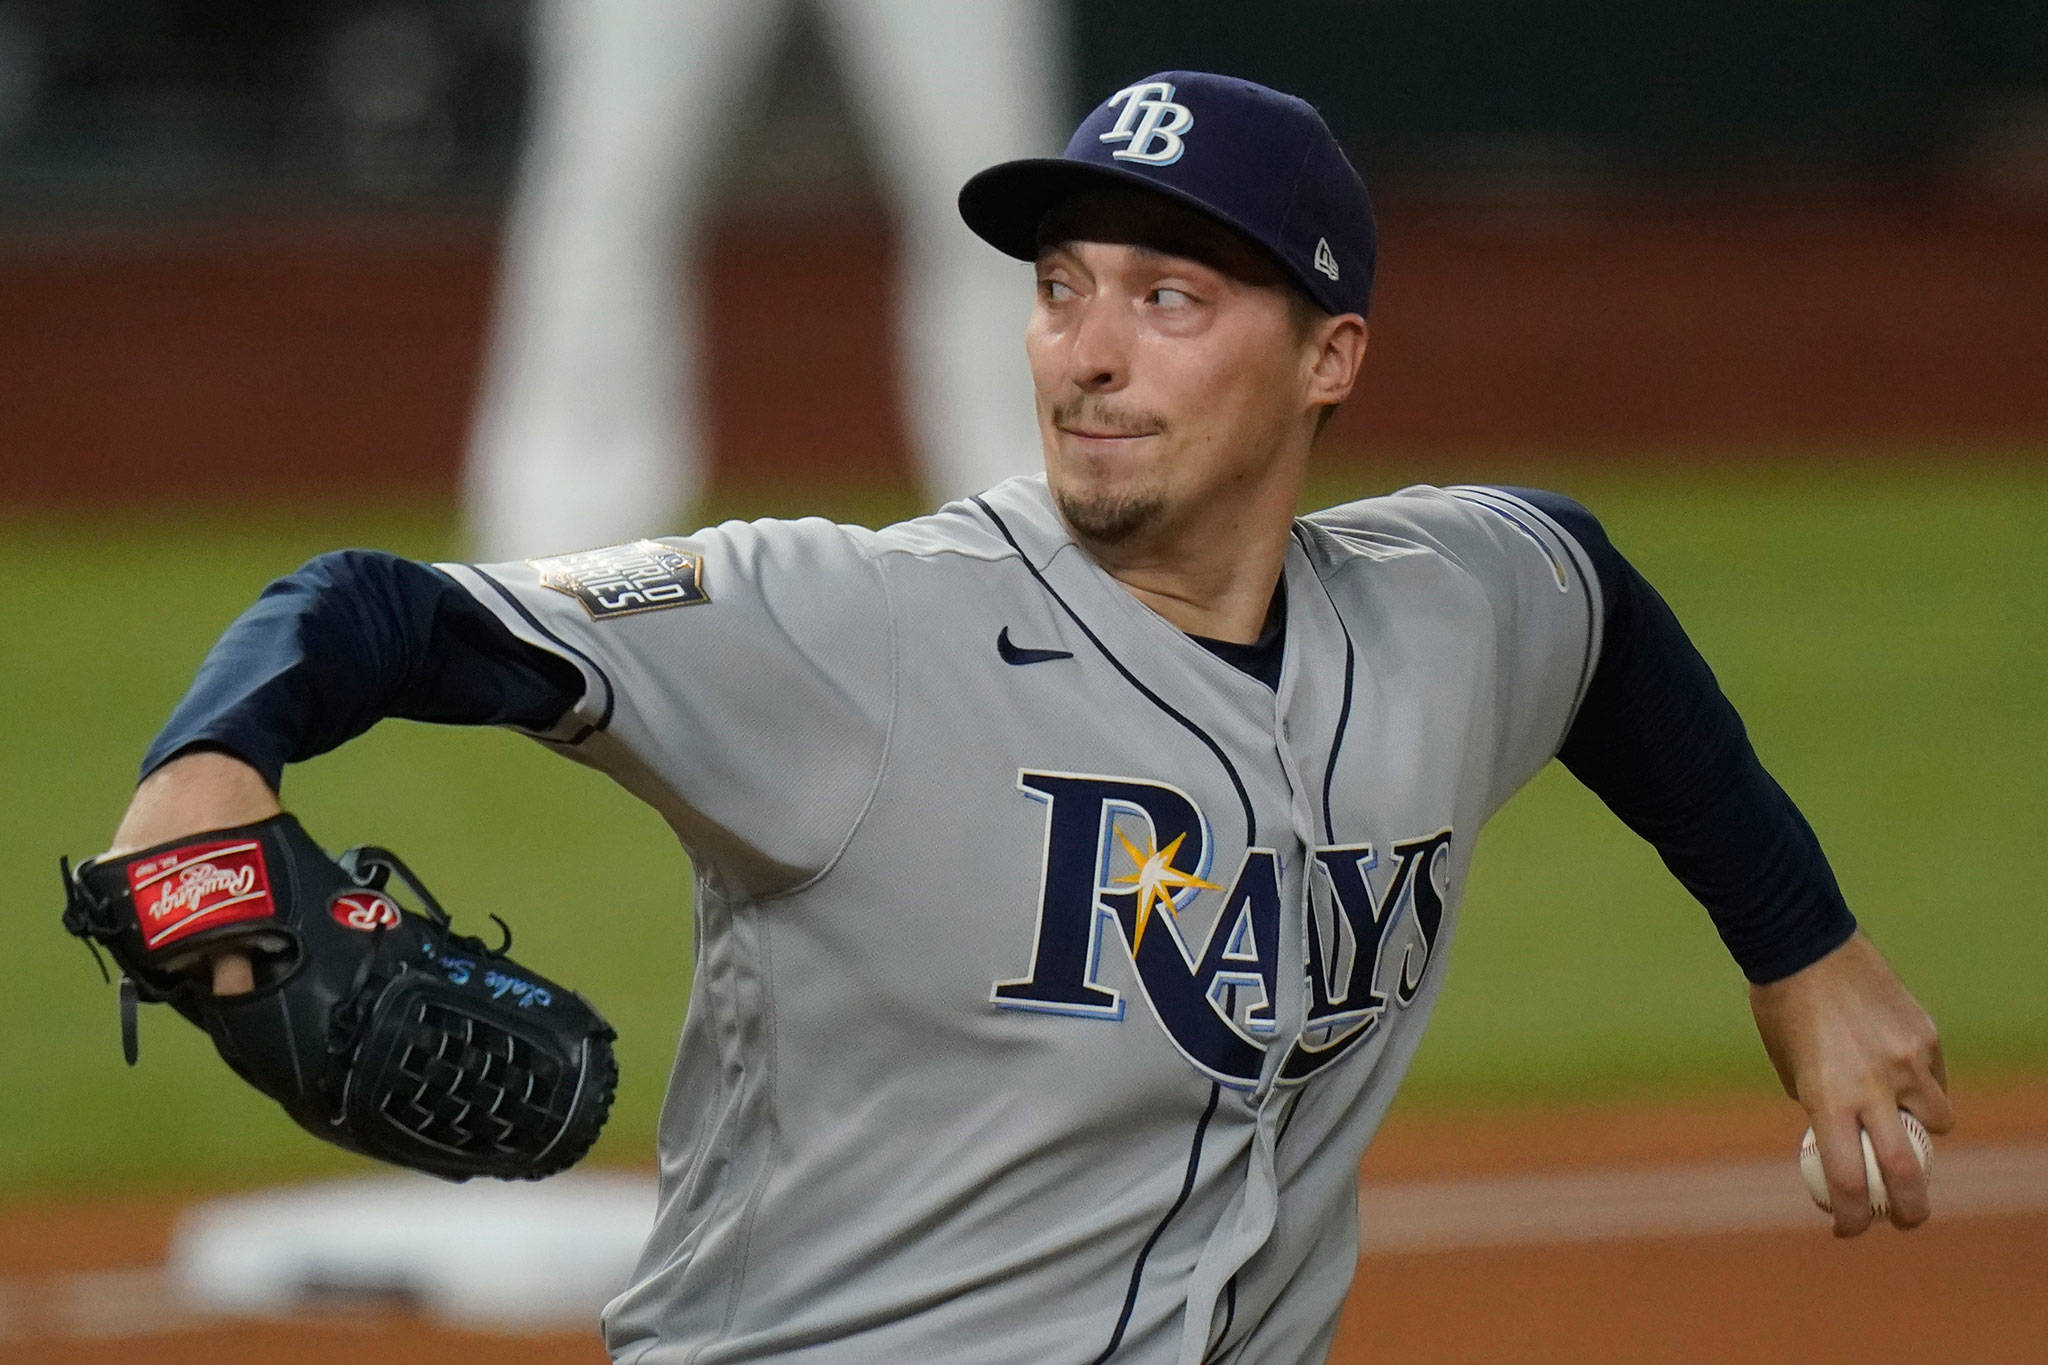 Rays starting pitcher Blake Snell, a Shorewood High School alum, throws against the Dodgers during the first inning of Game 2 of the World Series on Oct. 21, 2020, in Arlington, Texas. (AP Photo/Eric Gay)